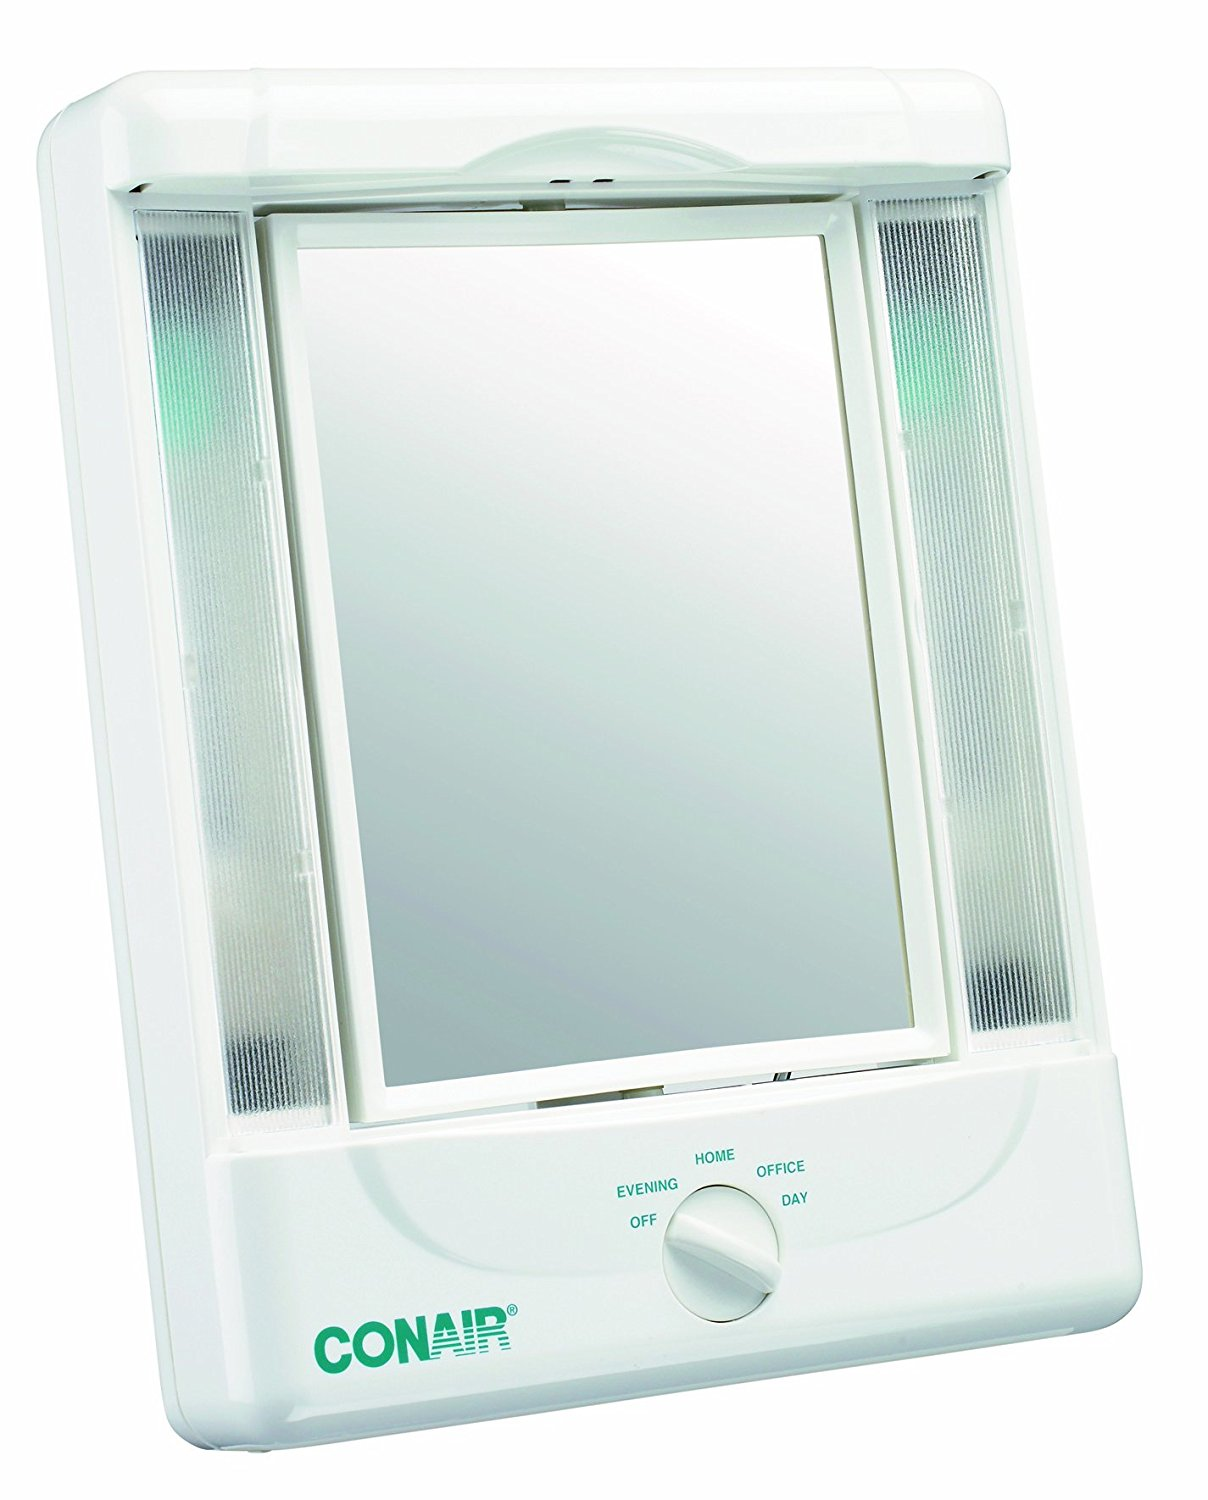 Conair Lighted Makeup Mirror | Conair Light Bulbs for Makeup Mirror | Conair Lighted Makeup Mirror Double Sided